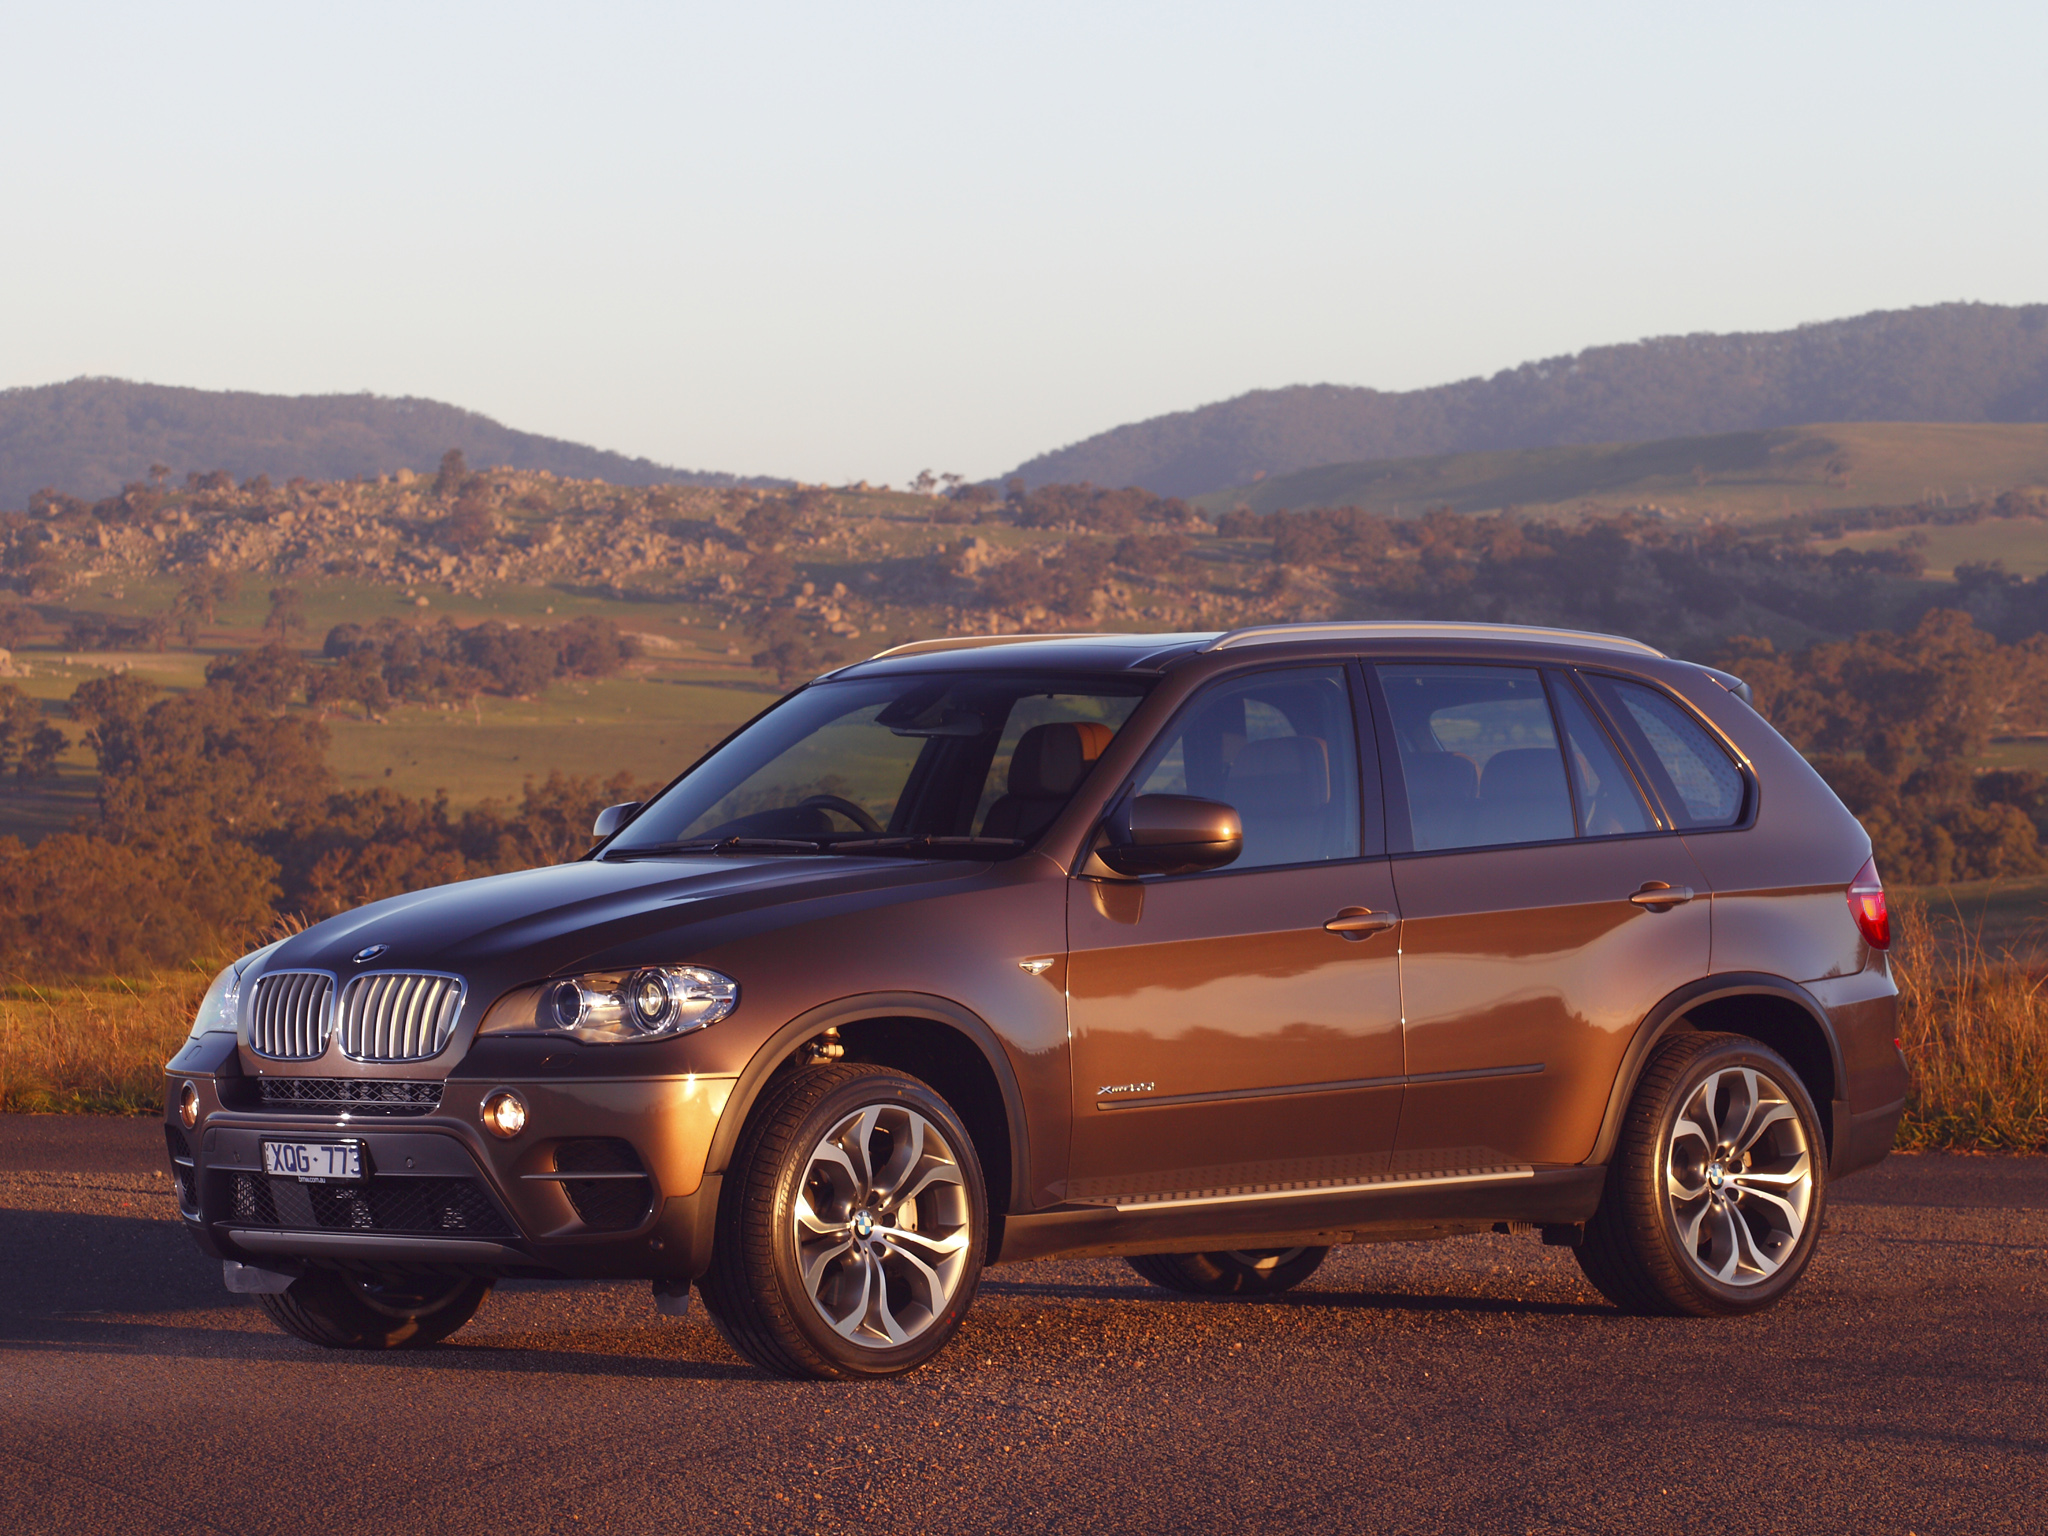 BMW X5 xDrive50i 2010 photo - 12